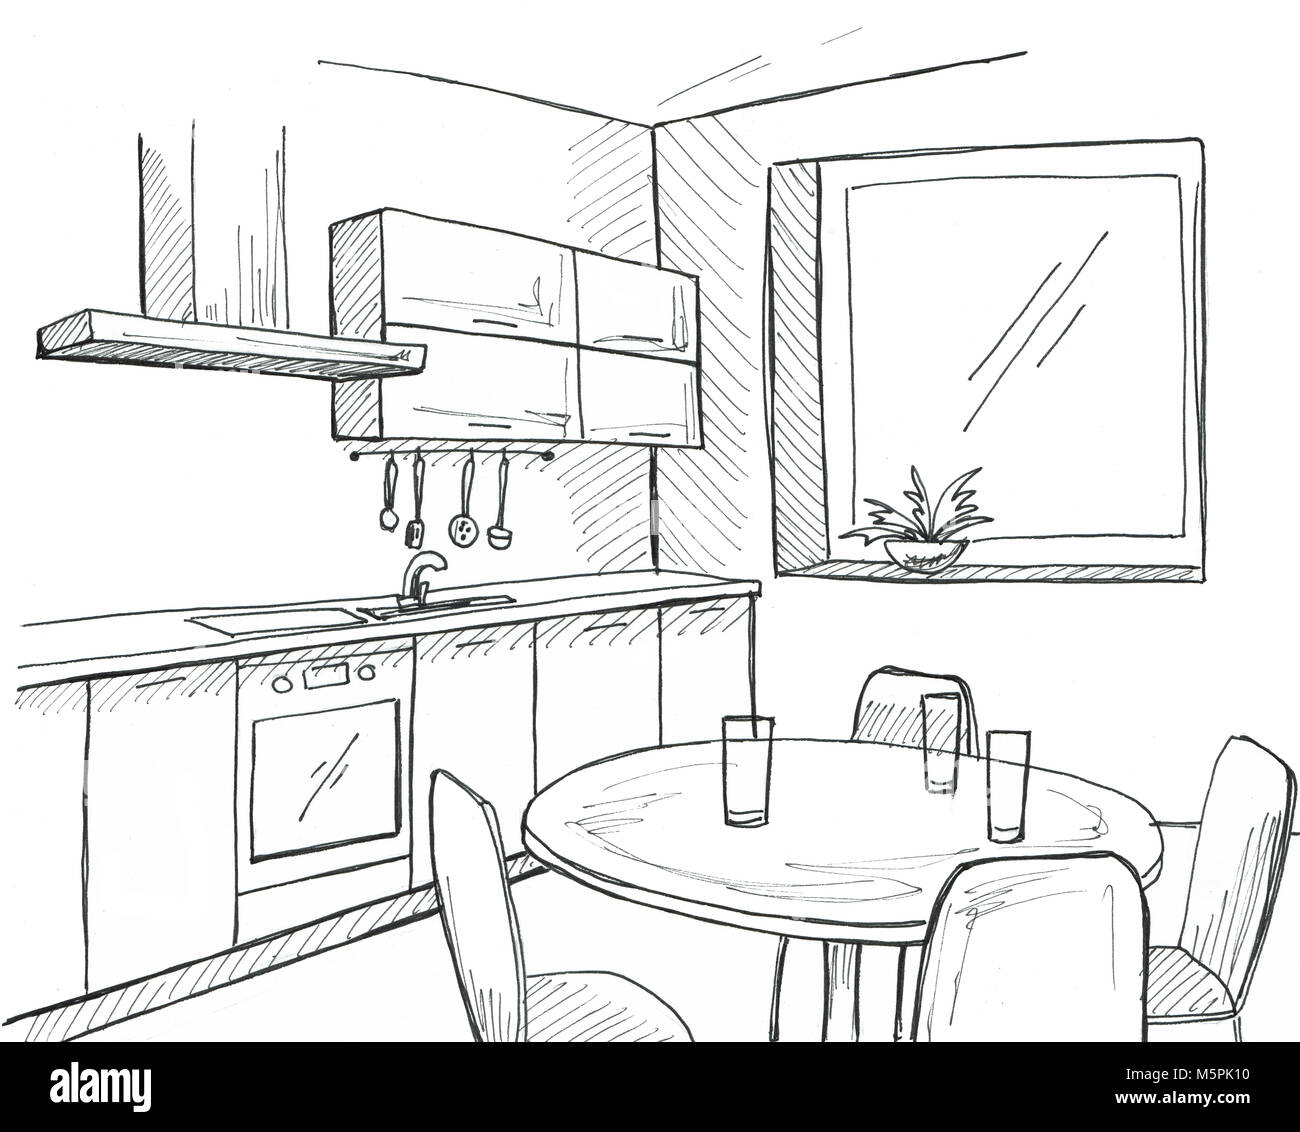 Kitchen Window Drawing: Sketch Of Tap Stock Photos & Sketch Of Tap Stock Images